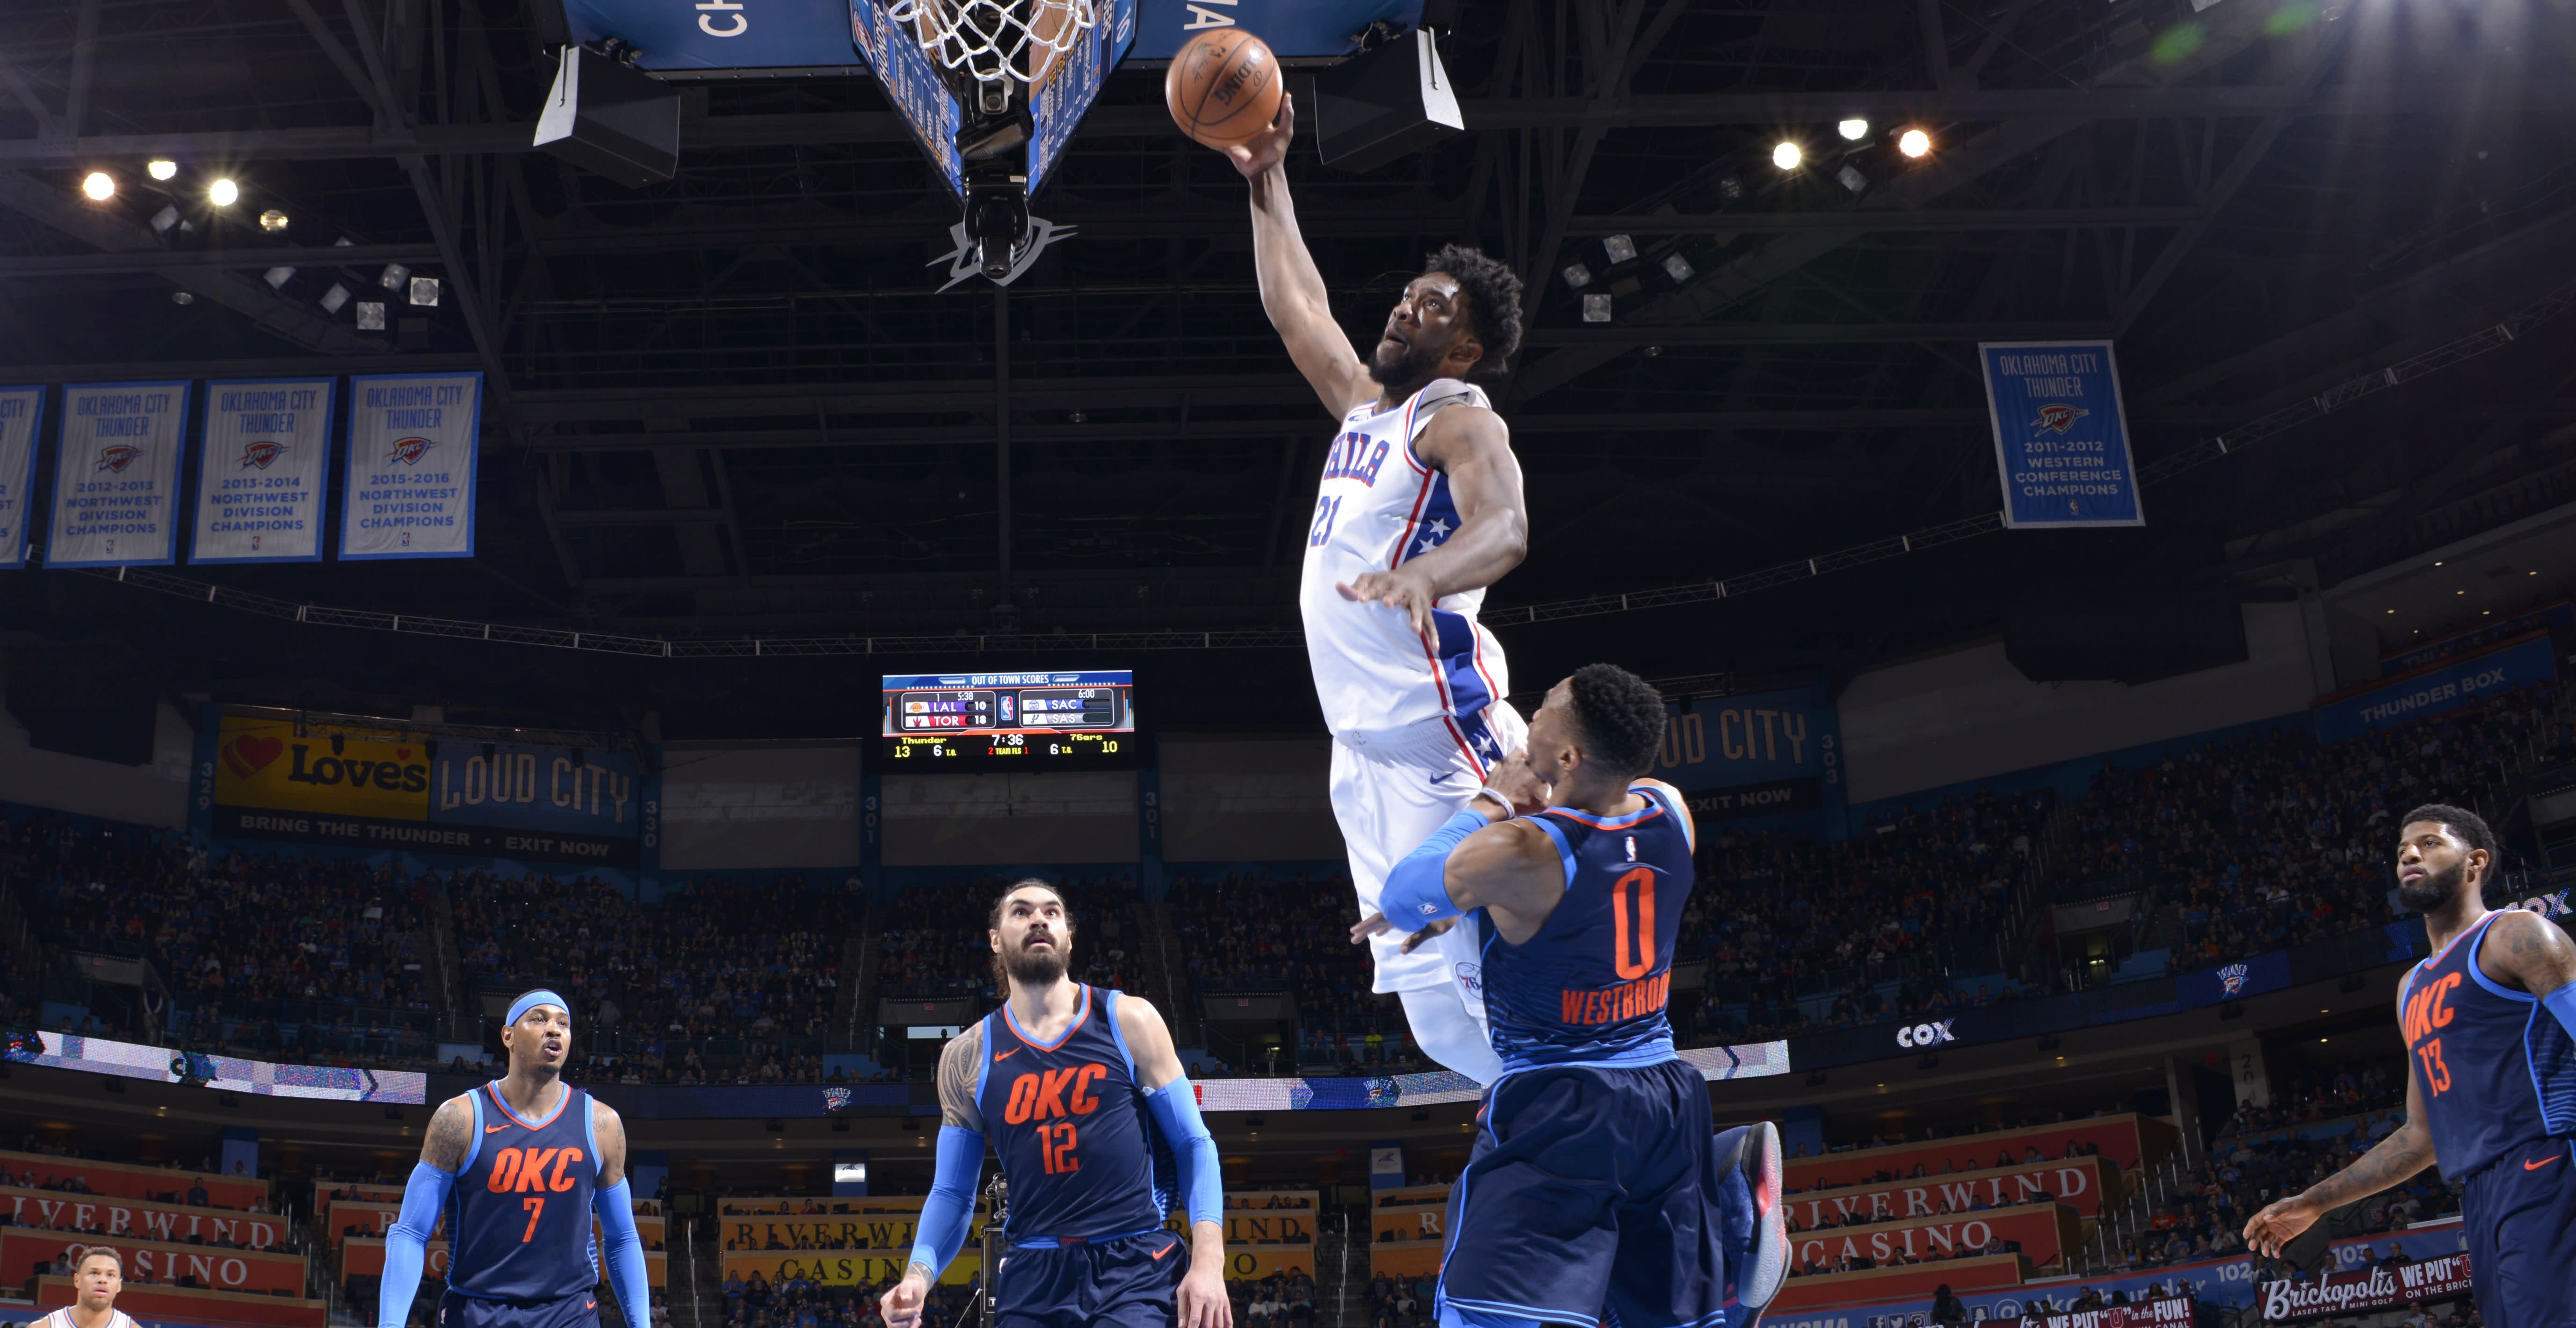 Embiid sends Westbrook sprawling with dunk - Officialsportsbetting.com